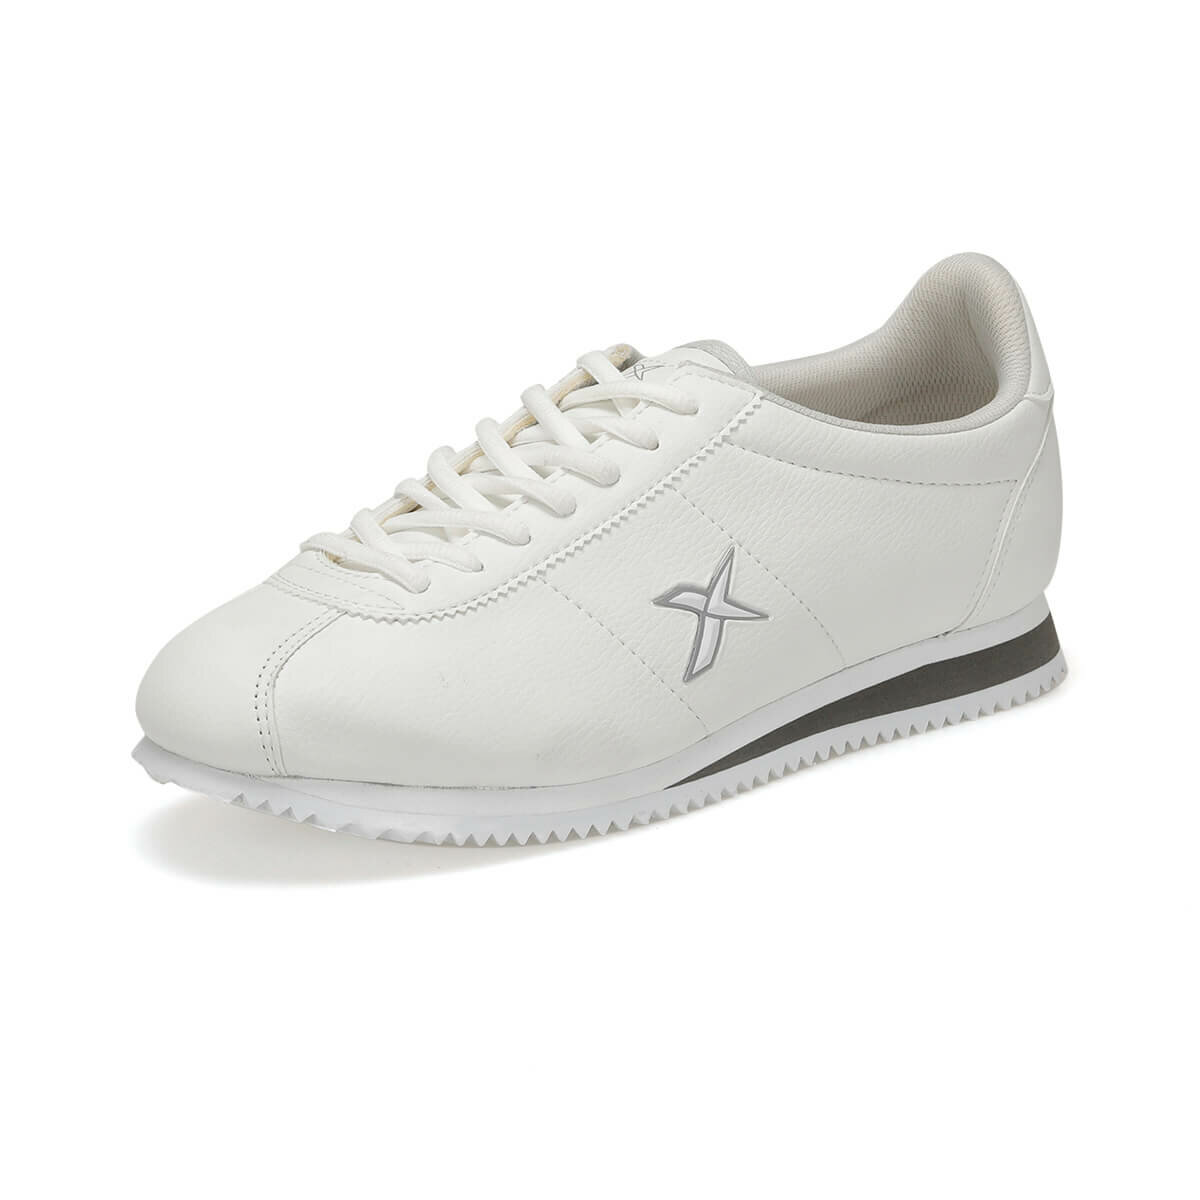 FLO GIGA M 9PR White Men 'S Sneaker Shoes KINETIX